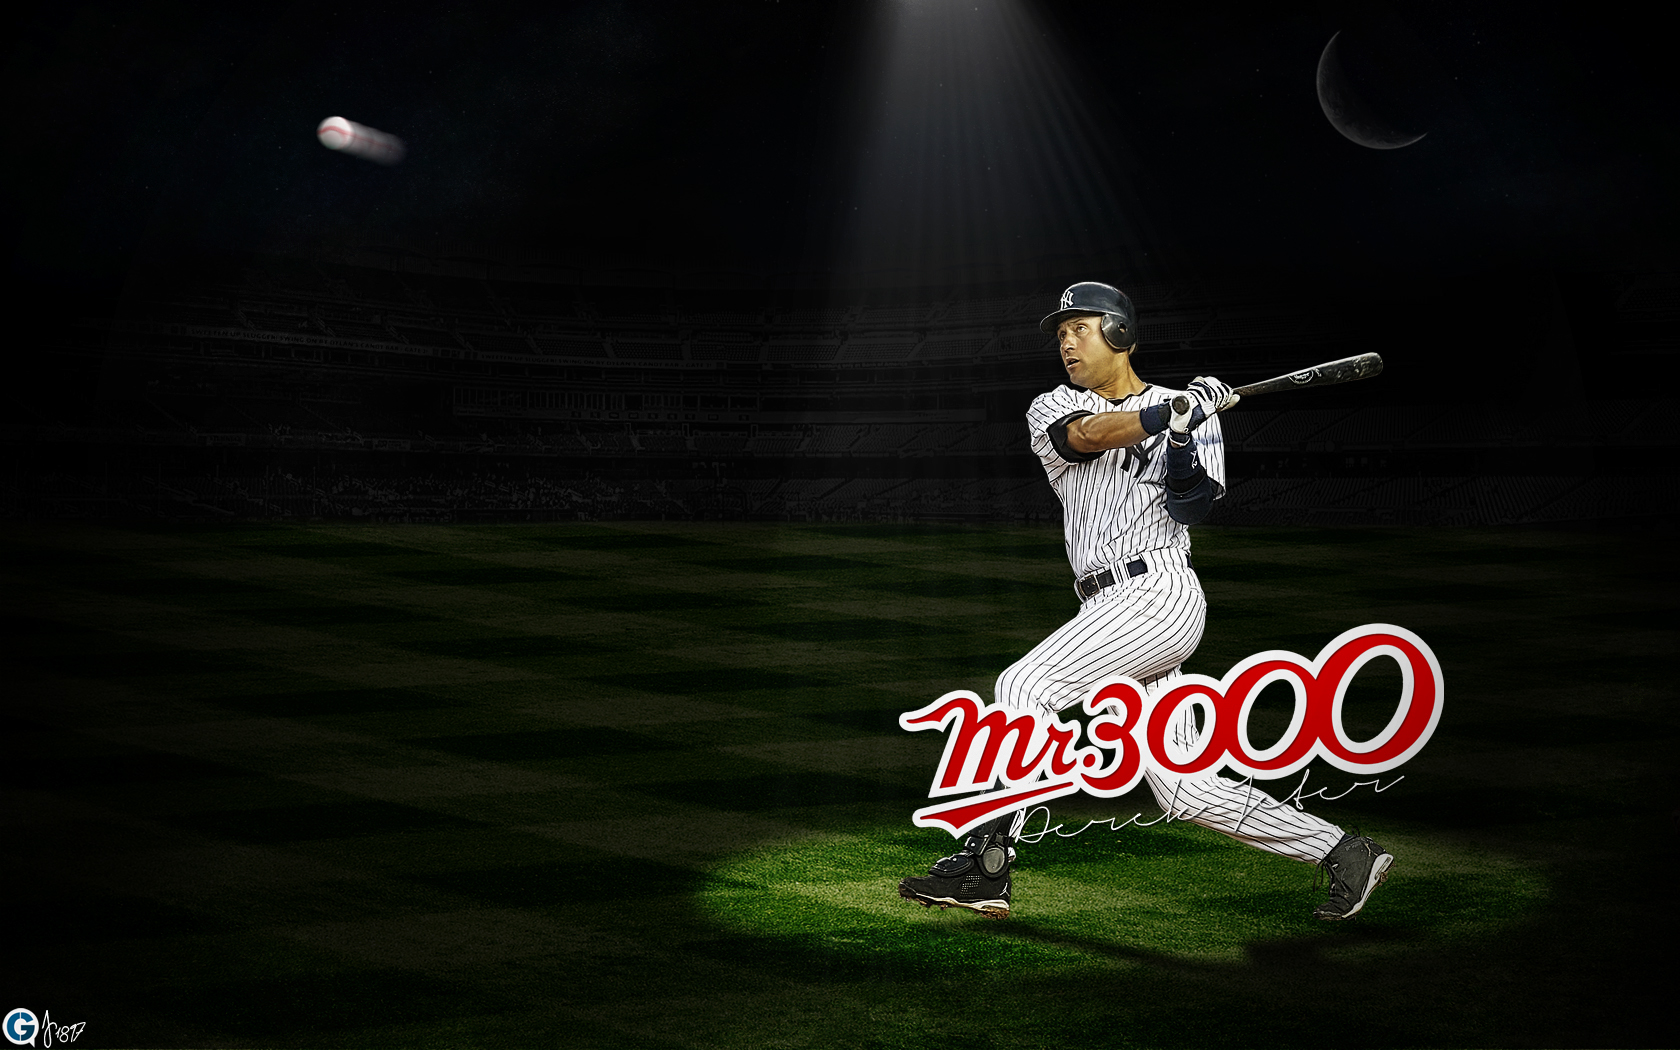 BASEBALL LIVE WALLPAPERS Old Wallpapers On Behance